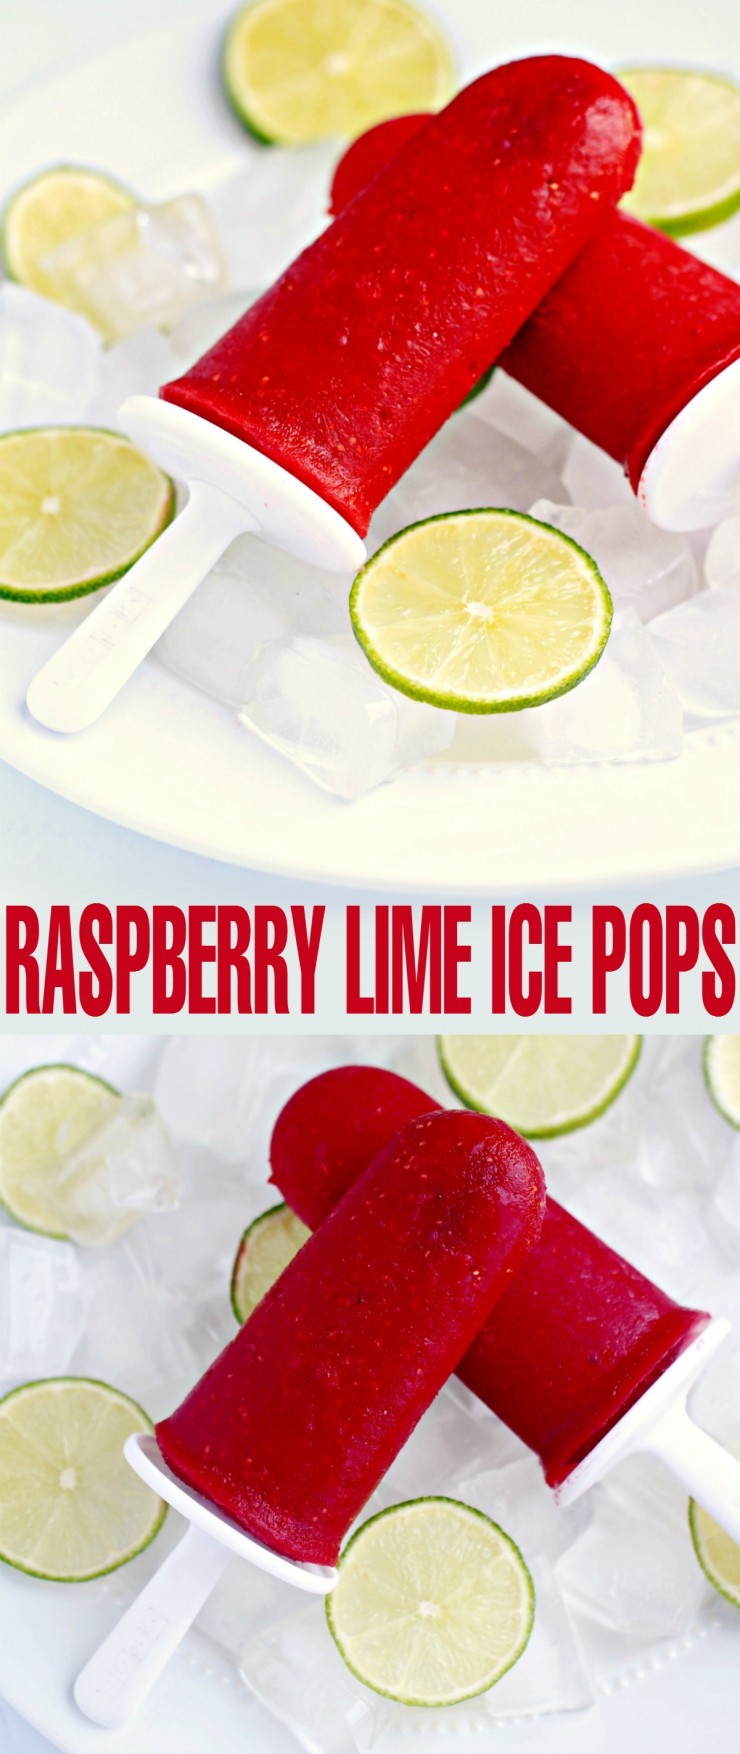 Cool off with these sweet and tangy summer treats full of raspberry flavour with a subtle hint of lime. This Raspberry Lime Ice Pop Recipe is sure to be a hit!